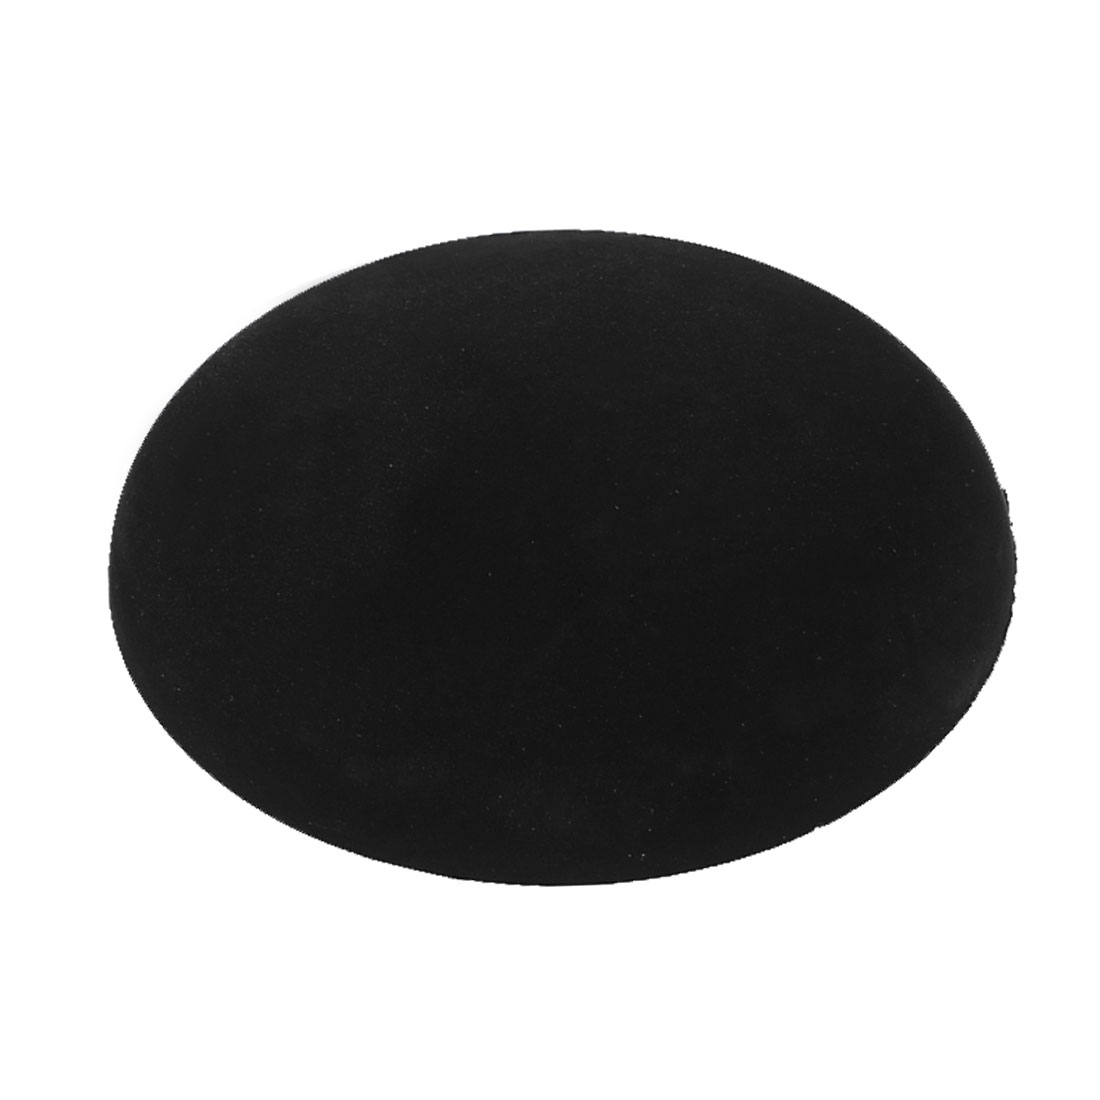 Black Rubber Adhesive Wall Guard Door Handle Bumper Stop Stopper Protector